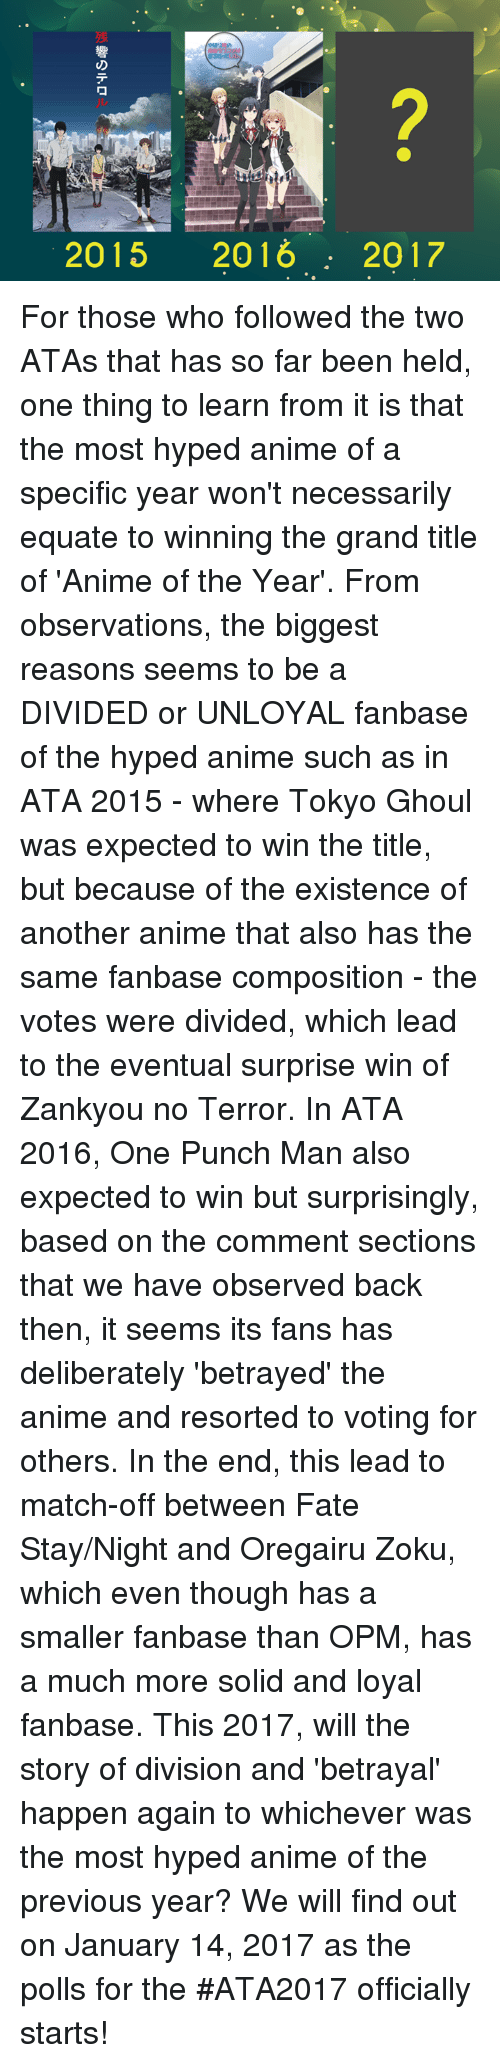 Hype, Memes, and One-Punch Man: 2015 2016 2017 For those who followed the two ATAs that has so far been held, one thing to learn from it is that the most hyped anime of a specific year won't necessarily equate to winning the grand title of 'Anime of the Year'.    From observations, the biggest reasons seems to be a DIVIDED or UNLOYAL fanbase of the hyped anime such as in ATA 2015 - where Tokyo Ghoul was expected to win the title, but because of the existence of another anime that also has the same fanbase composition - the votes were divided, which lead to the eventual surprise win of Zankyou no Terror. In ATA 2016, One Punch Man also expected to win but surprisingly, based on the comment sections that we have observed back then, it seems its fans has deliberately 'betrayed' the anime and resorted to voting for others. In the end, this lead to match-off between Fate Stay/Night and Oregairu Zoku, which even though has a smaller fanbase than OPM, has a much more solid and loyal fanbase.  This 2017, will the story of division and 'betrayal' happen again to whichever was the most hyped anime of the previous year?   We will find out on January 14, 2017 as the polls for the #ATA2017 officially starts!